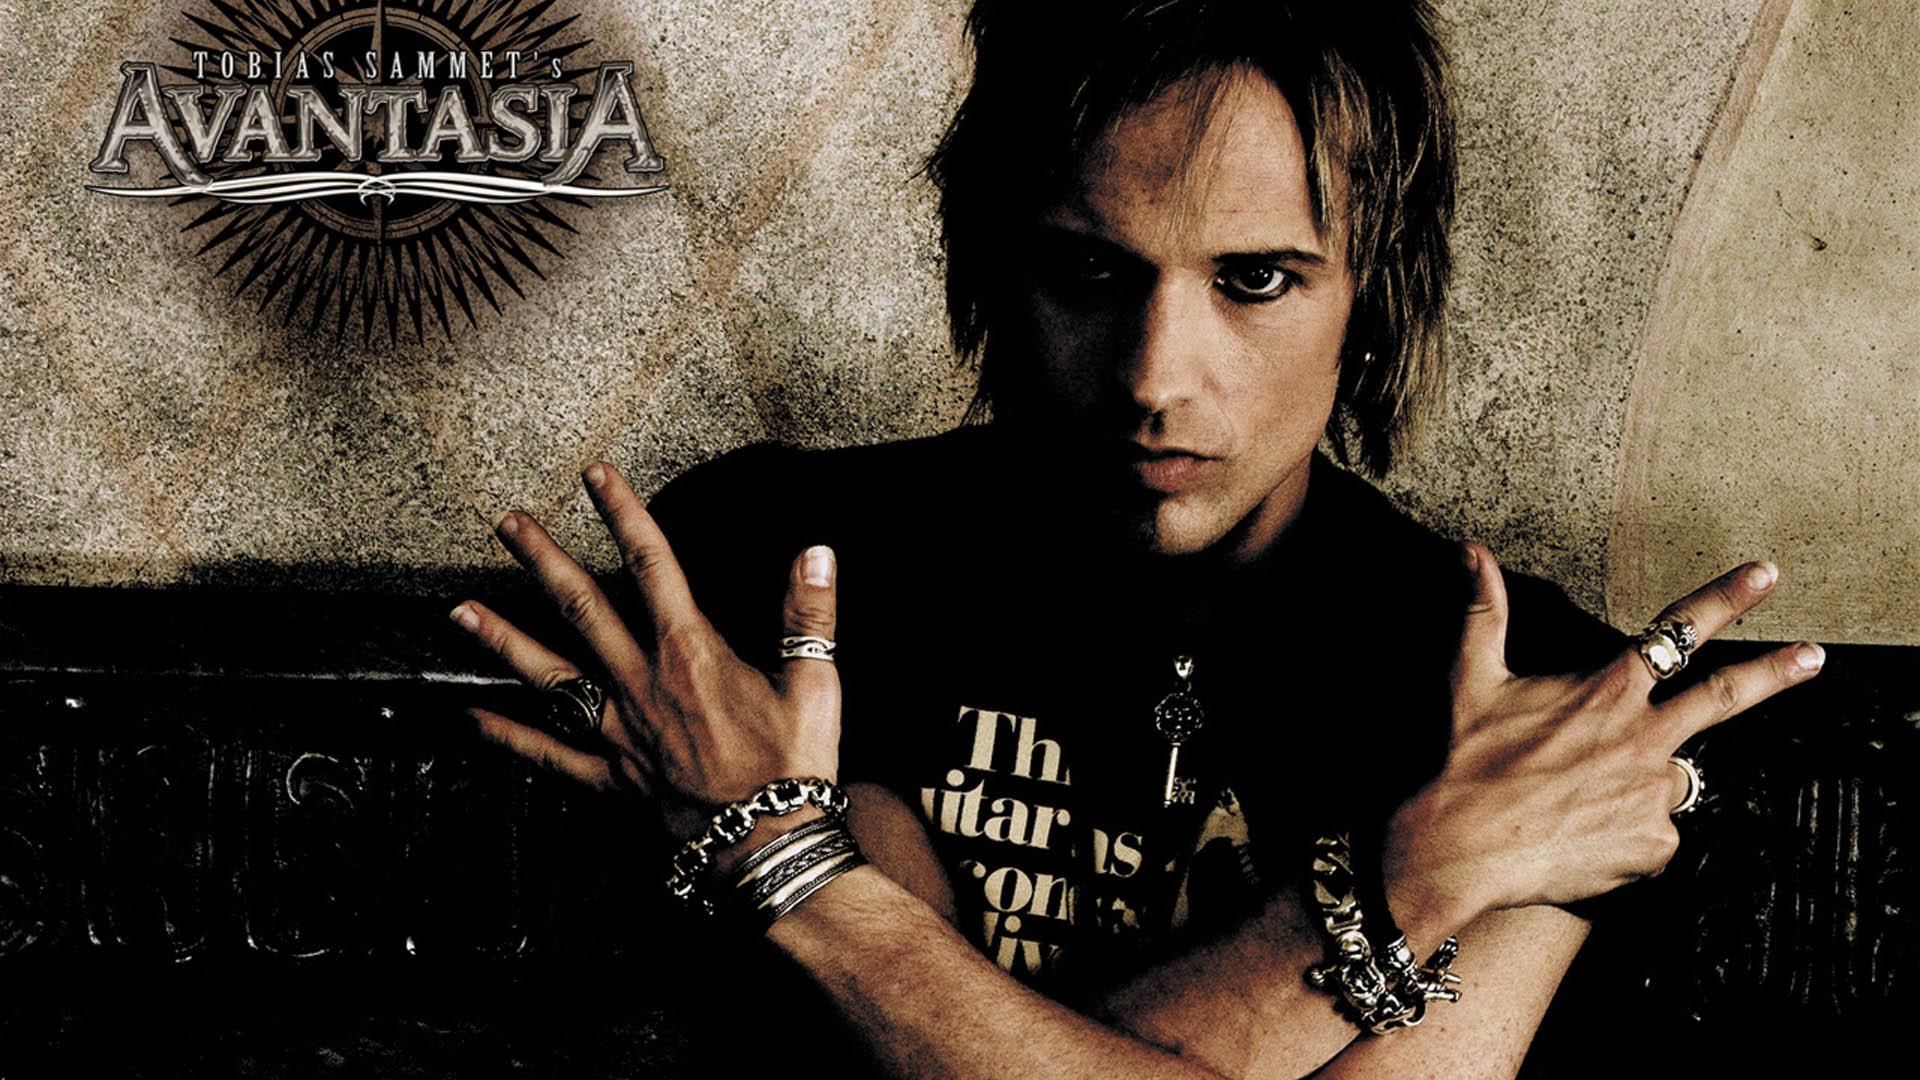 Girl With Guitar Hd Wallpaper 6 Avantasia Hd Wallpapers Background Images Wallpaper